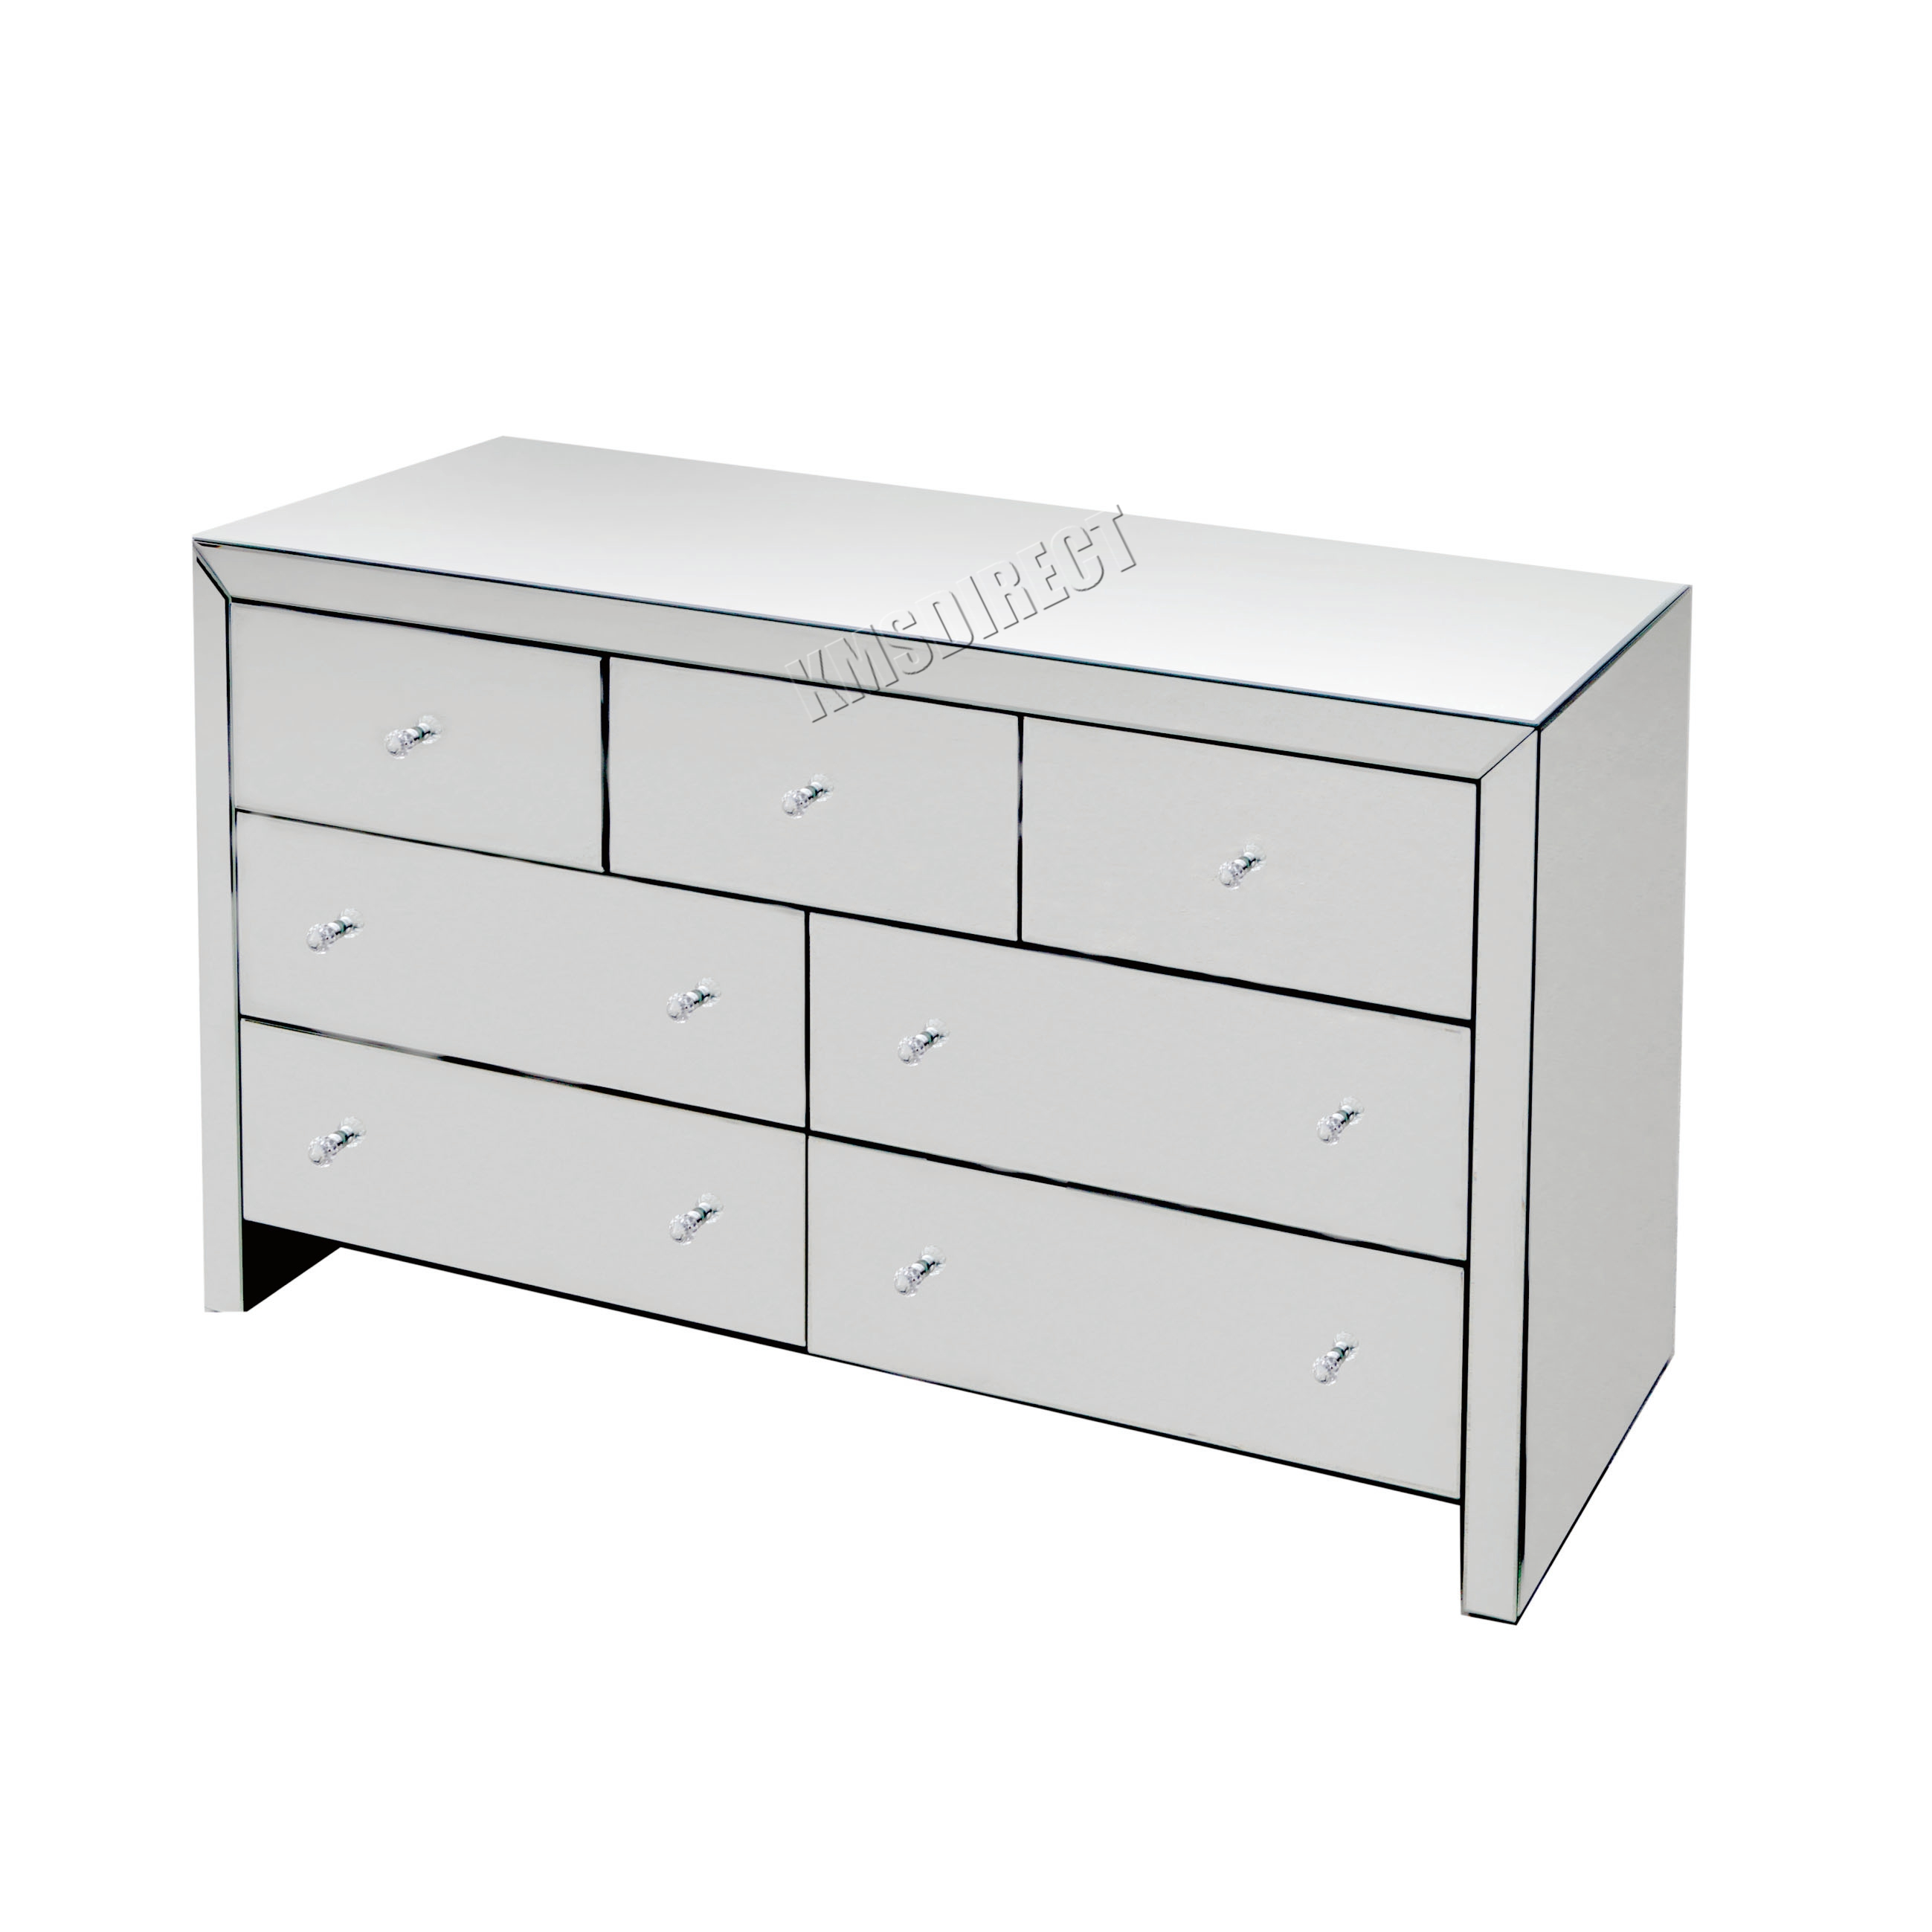 Foxhunter Mirrored Furniture Glass With Drawer Chest Cabinet Table  # Muebles Eh Elegant House